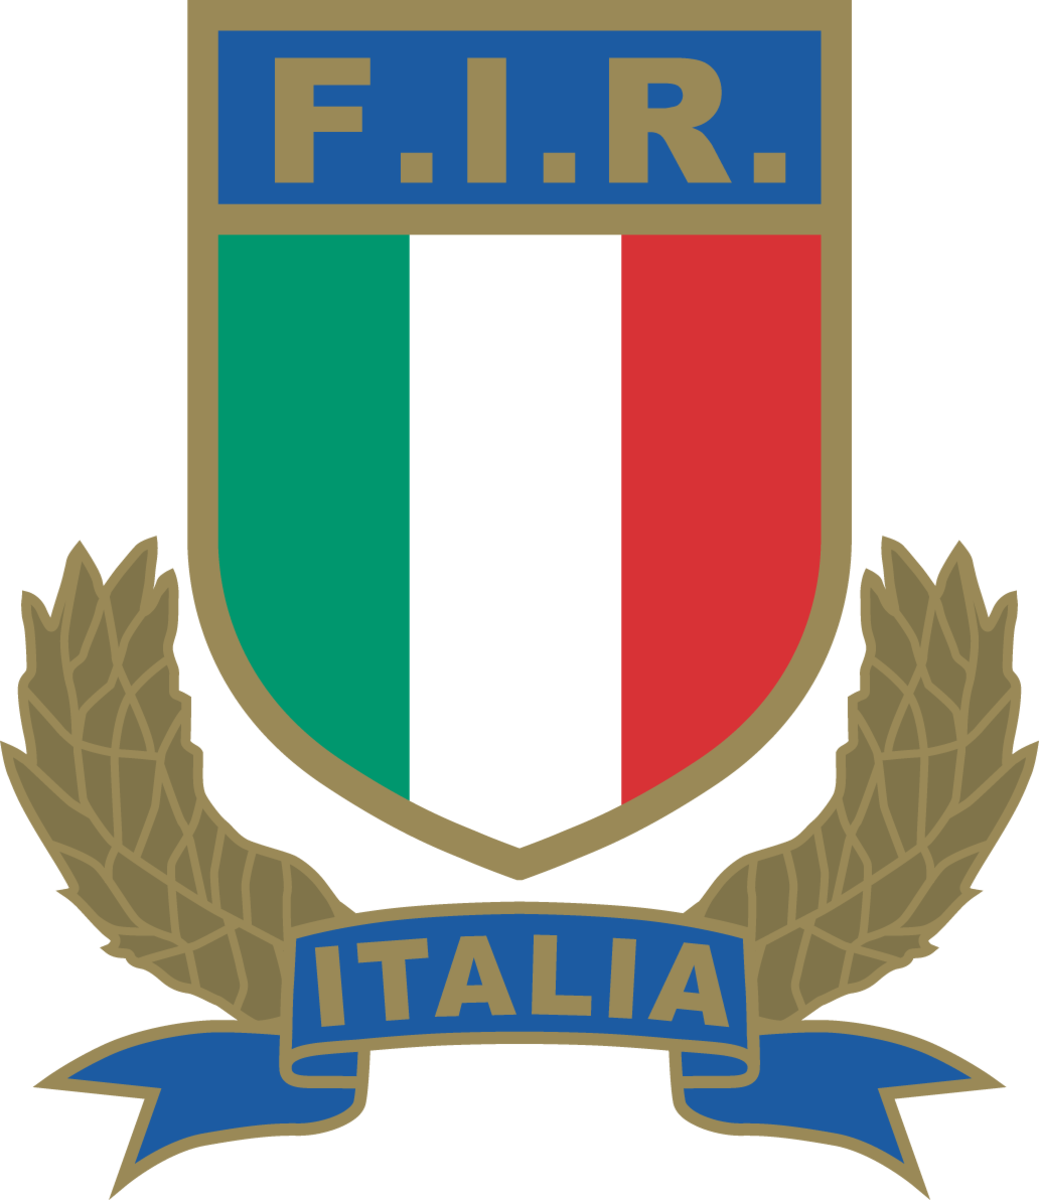 The Italian Rugby Emblem